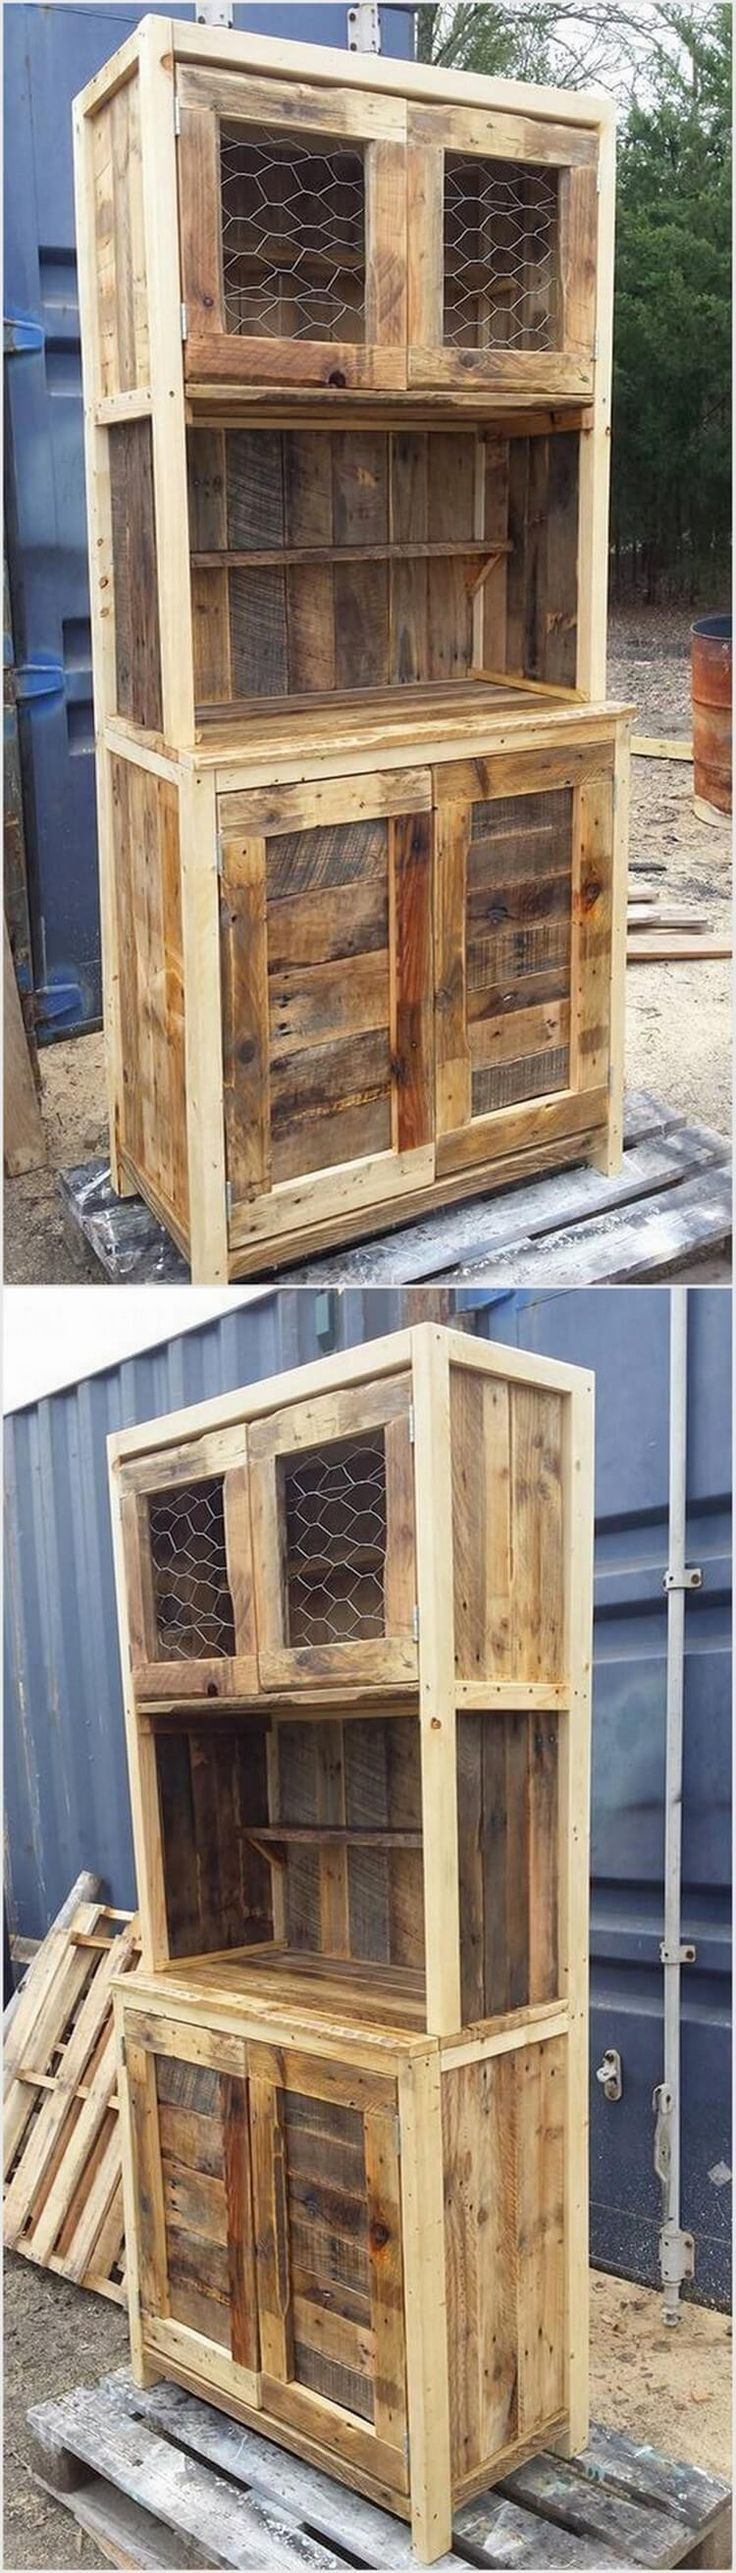 Cupboards Made From Pallets 650 Best Wooden Pallet Furniture Images On Pinterest Pallet